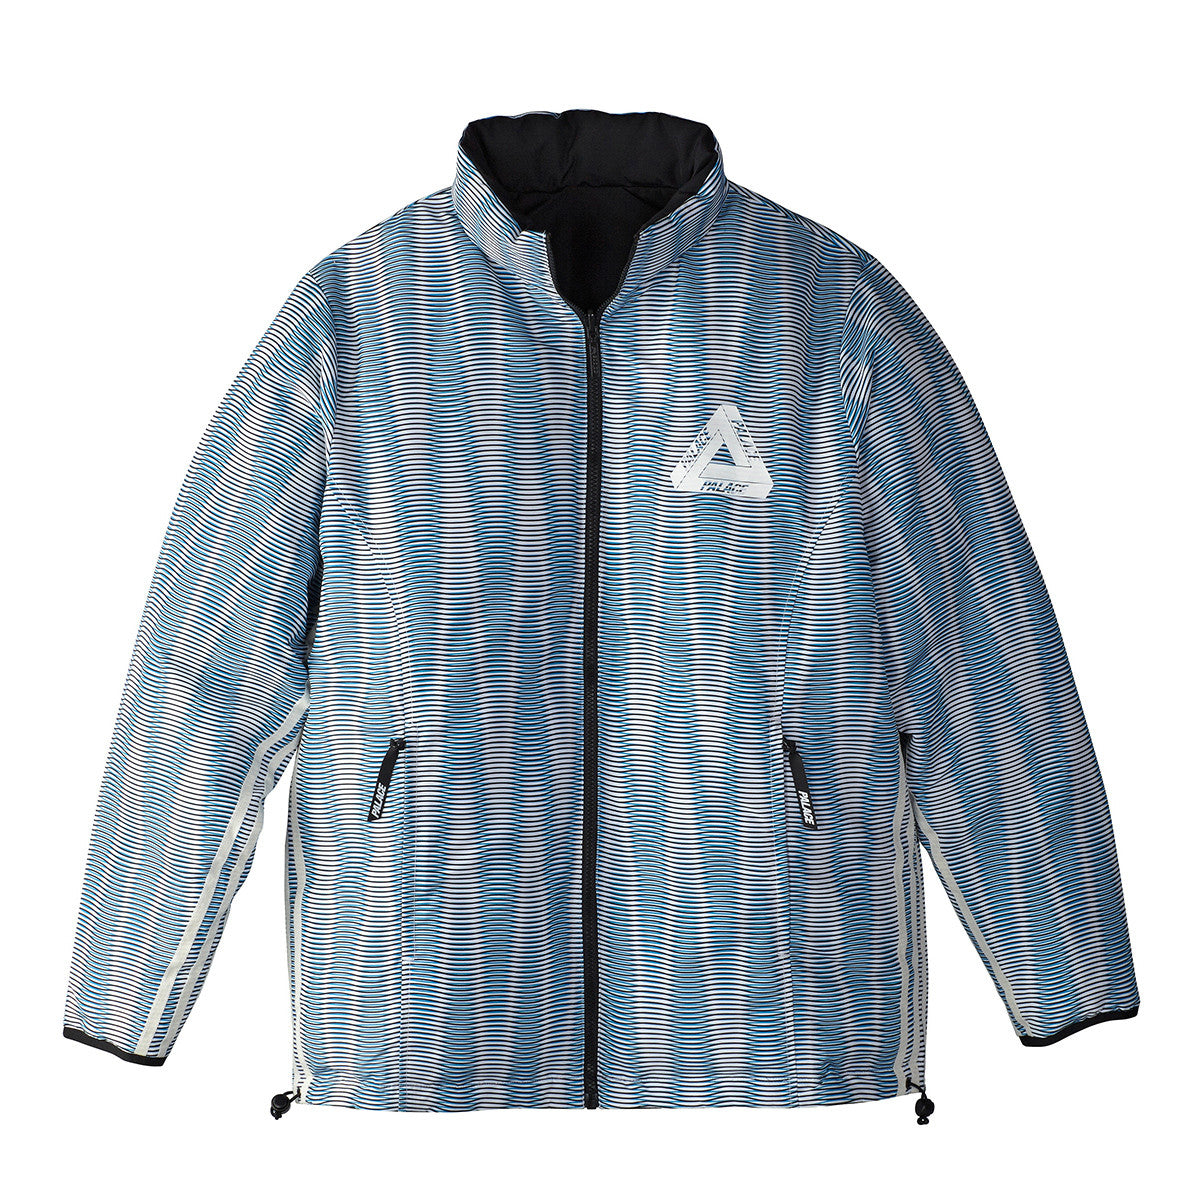 Adidas x Palace Reversible Down Jacket